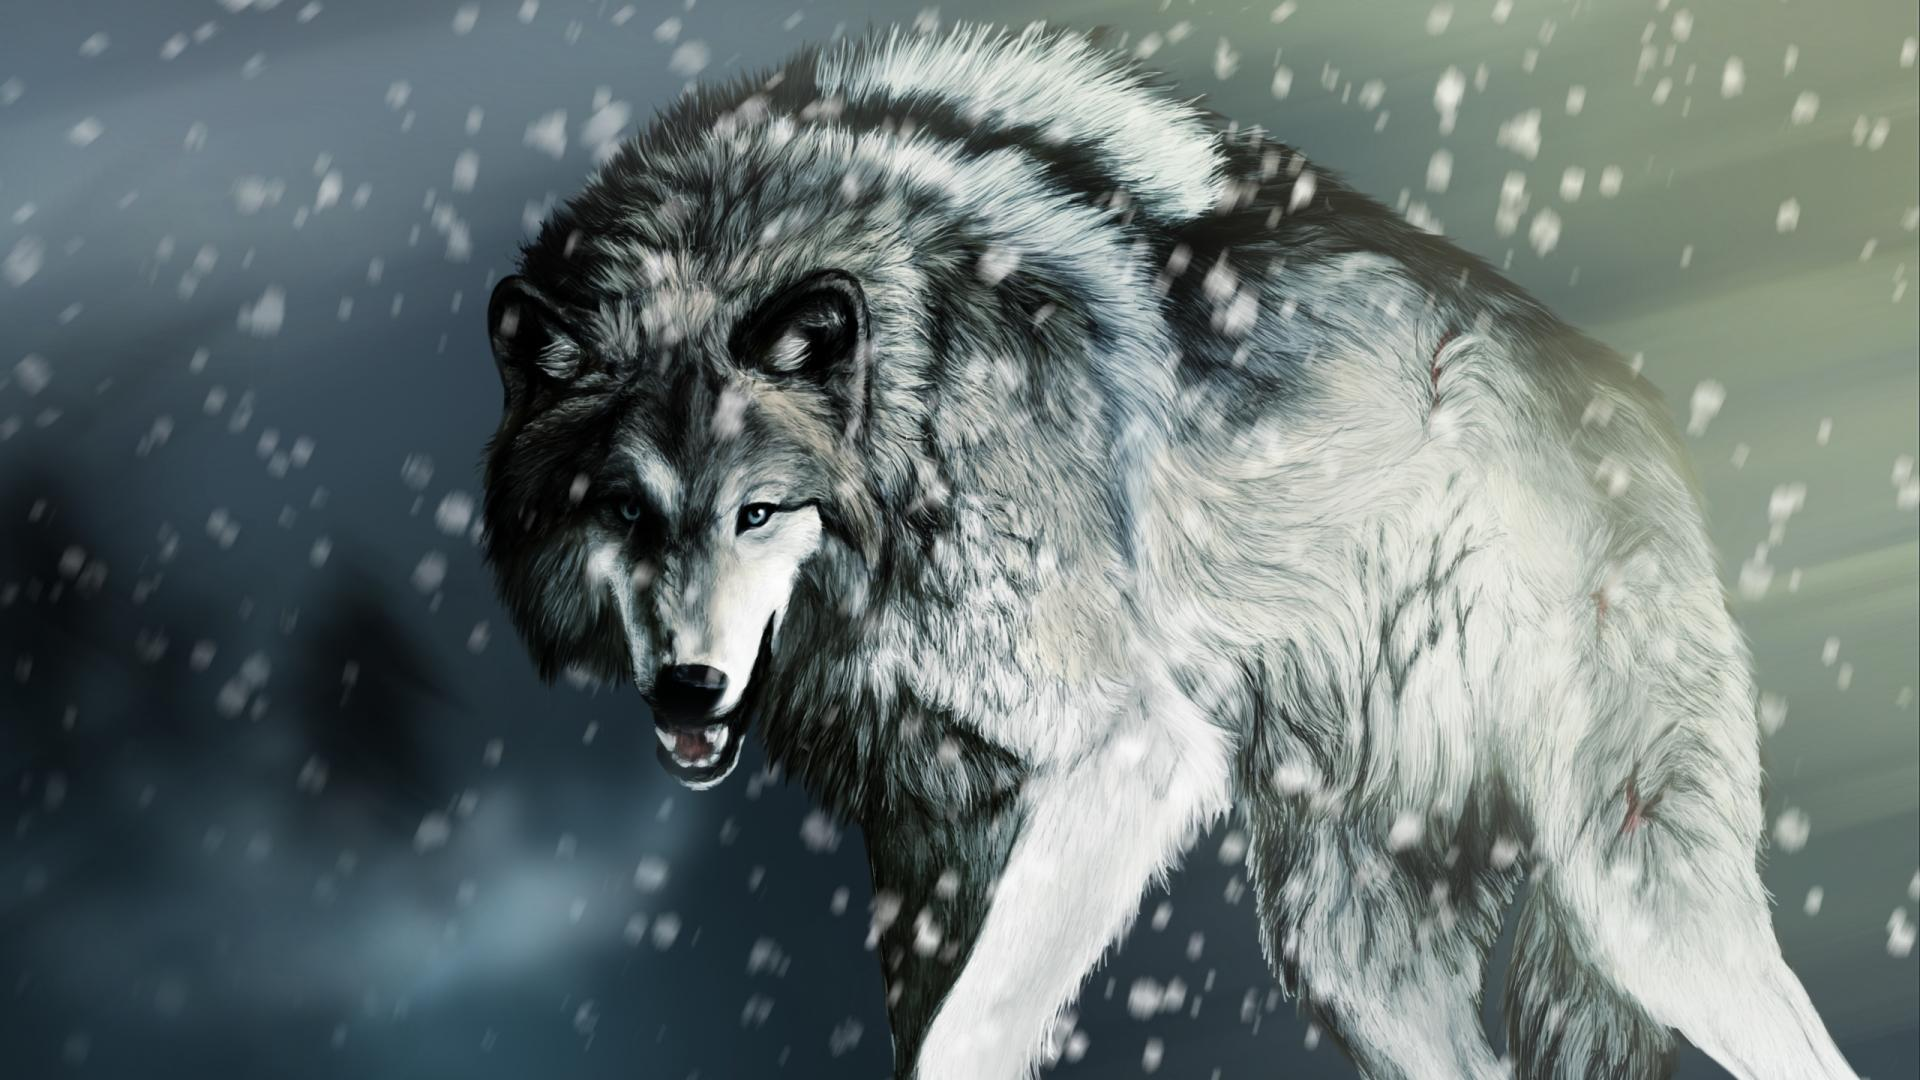 1920x1080 Wolf Wallpapers 1920x1080